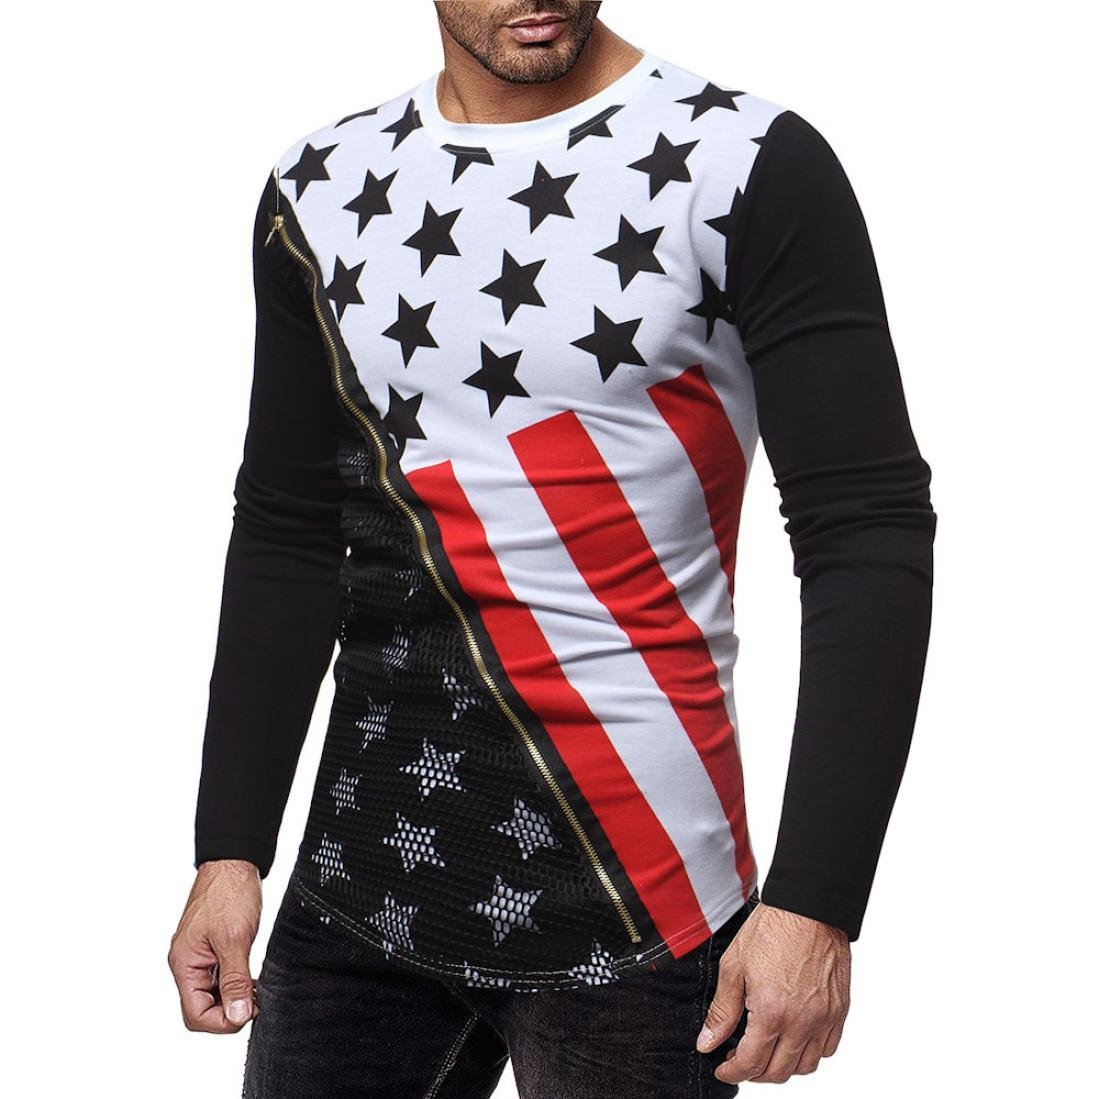 Amazon.com: WM & MW Mens Pullover Tops Long Sleeve Fashion Zipper Mesh Patchwork Stars Printed T Shirts Casual Blouse Top: Clothing